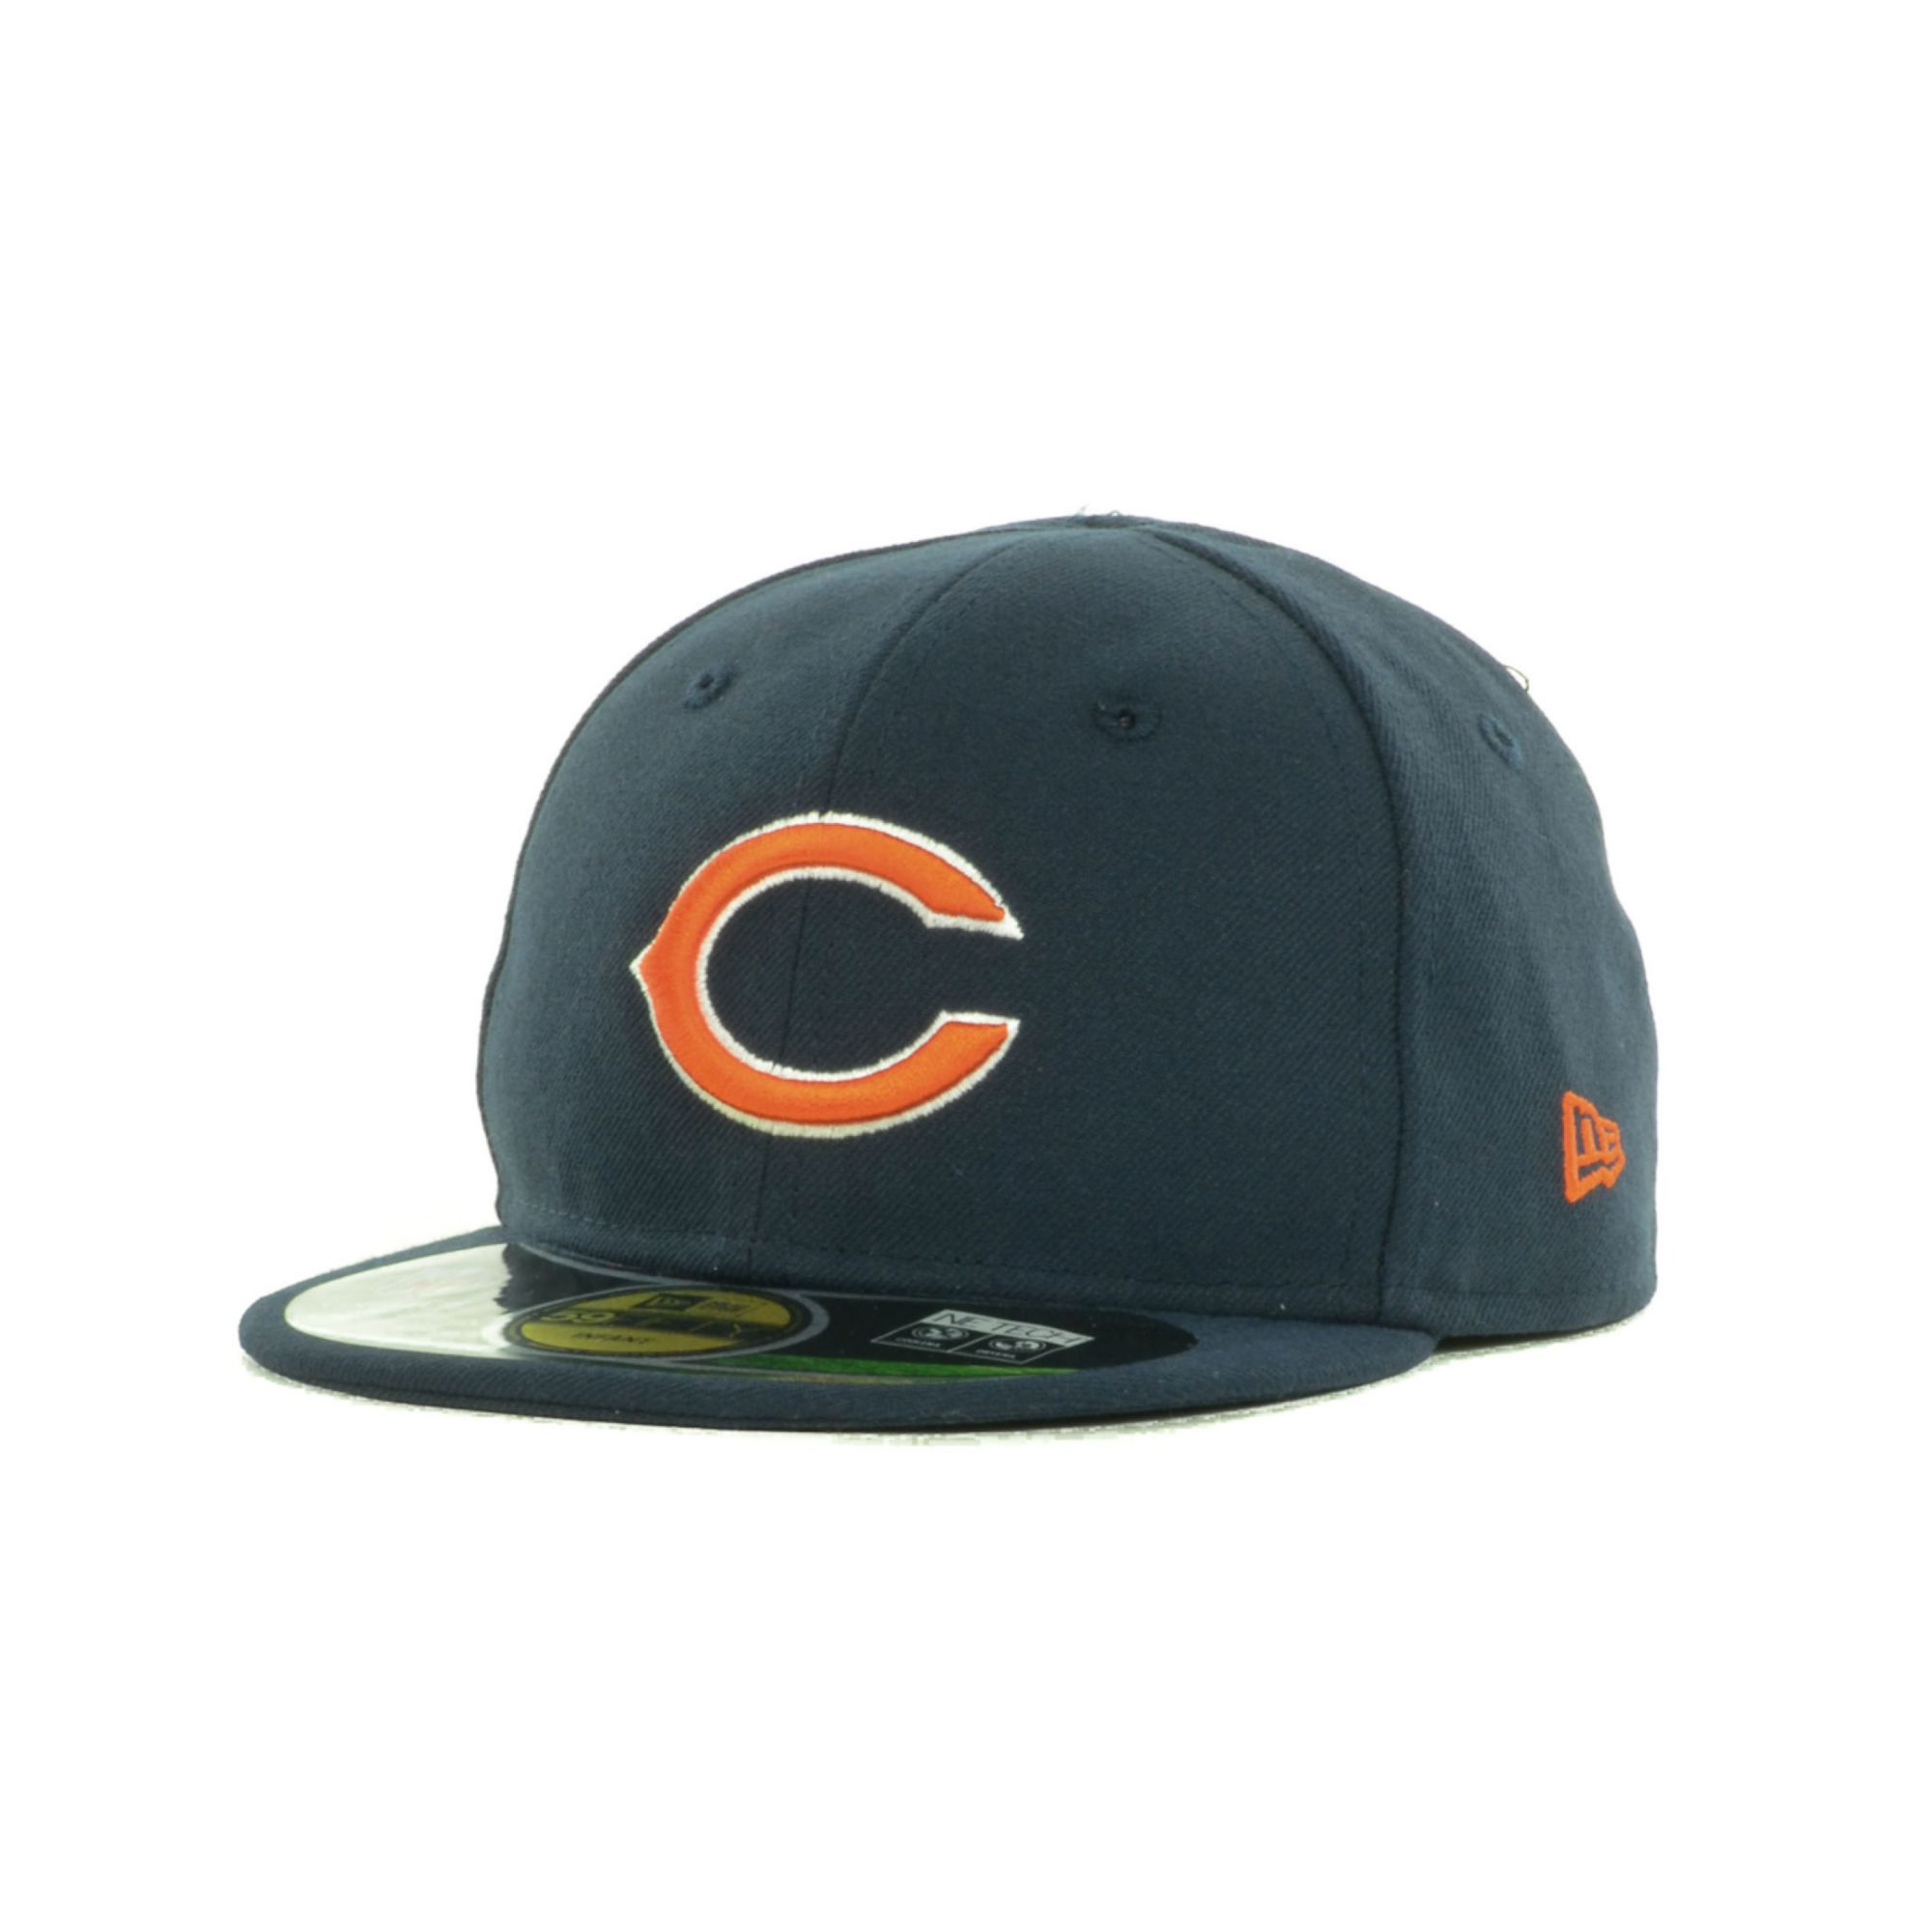 Men S Chicago Bears New Era Navy Blue Lined Visor